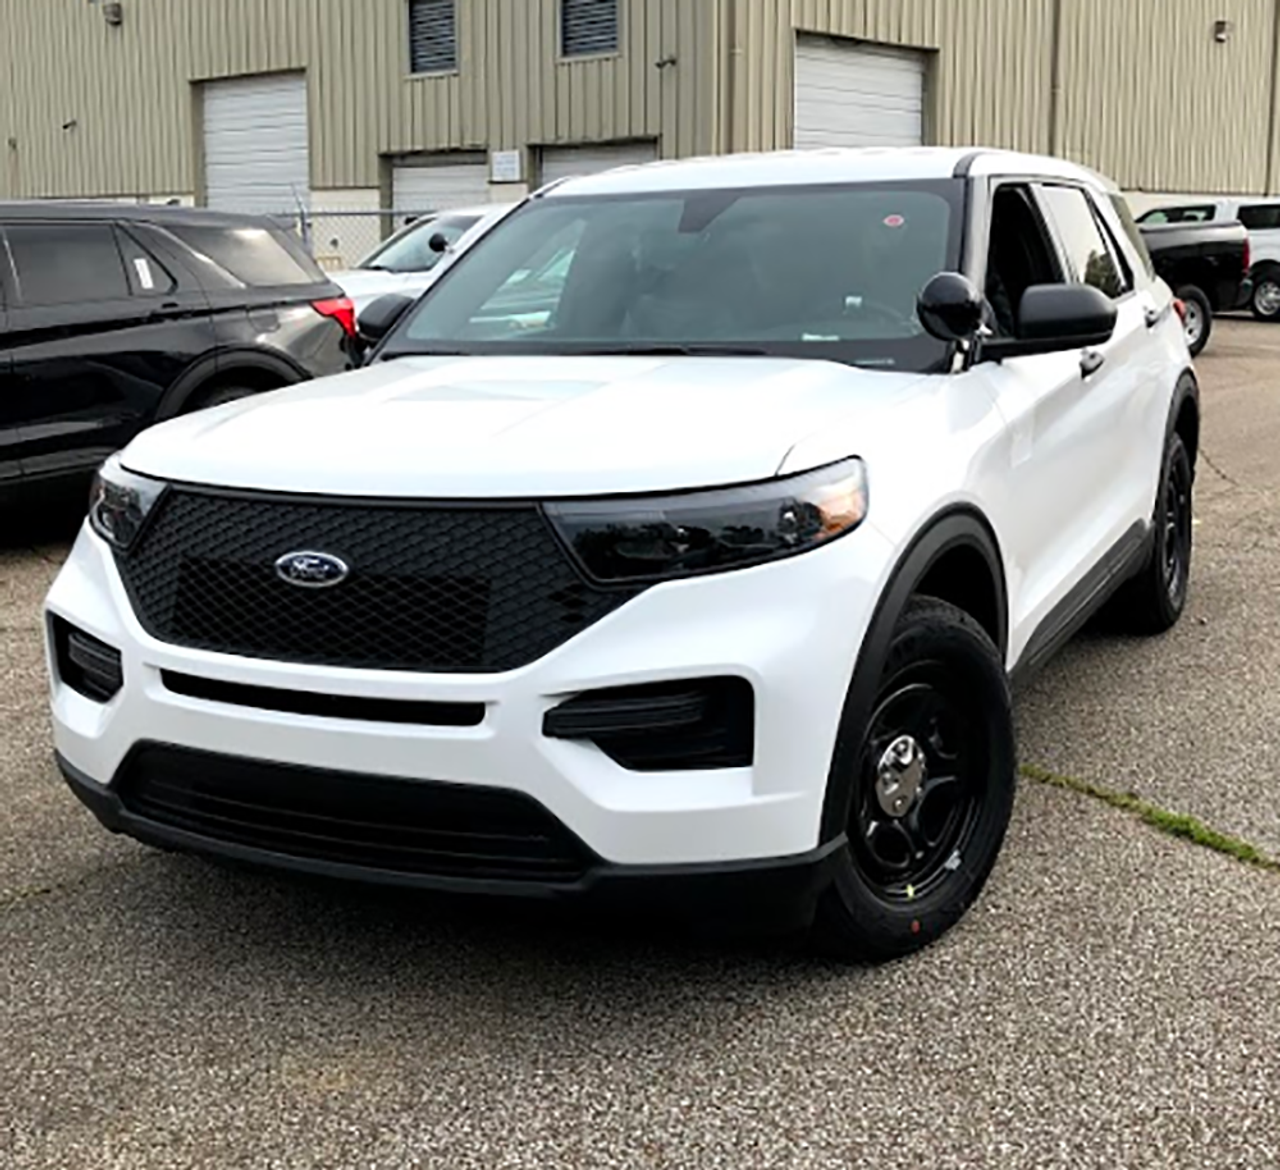 New 2020 White Ford (Explorer) Police Interceptor PI Utility Hybrid AWD For Sale, Ready to be Built as an Admin Slick-Top Turnkey, featuring Whelen, Soundoff, Havis, + Delivery